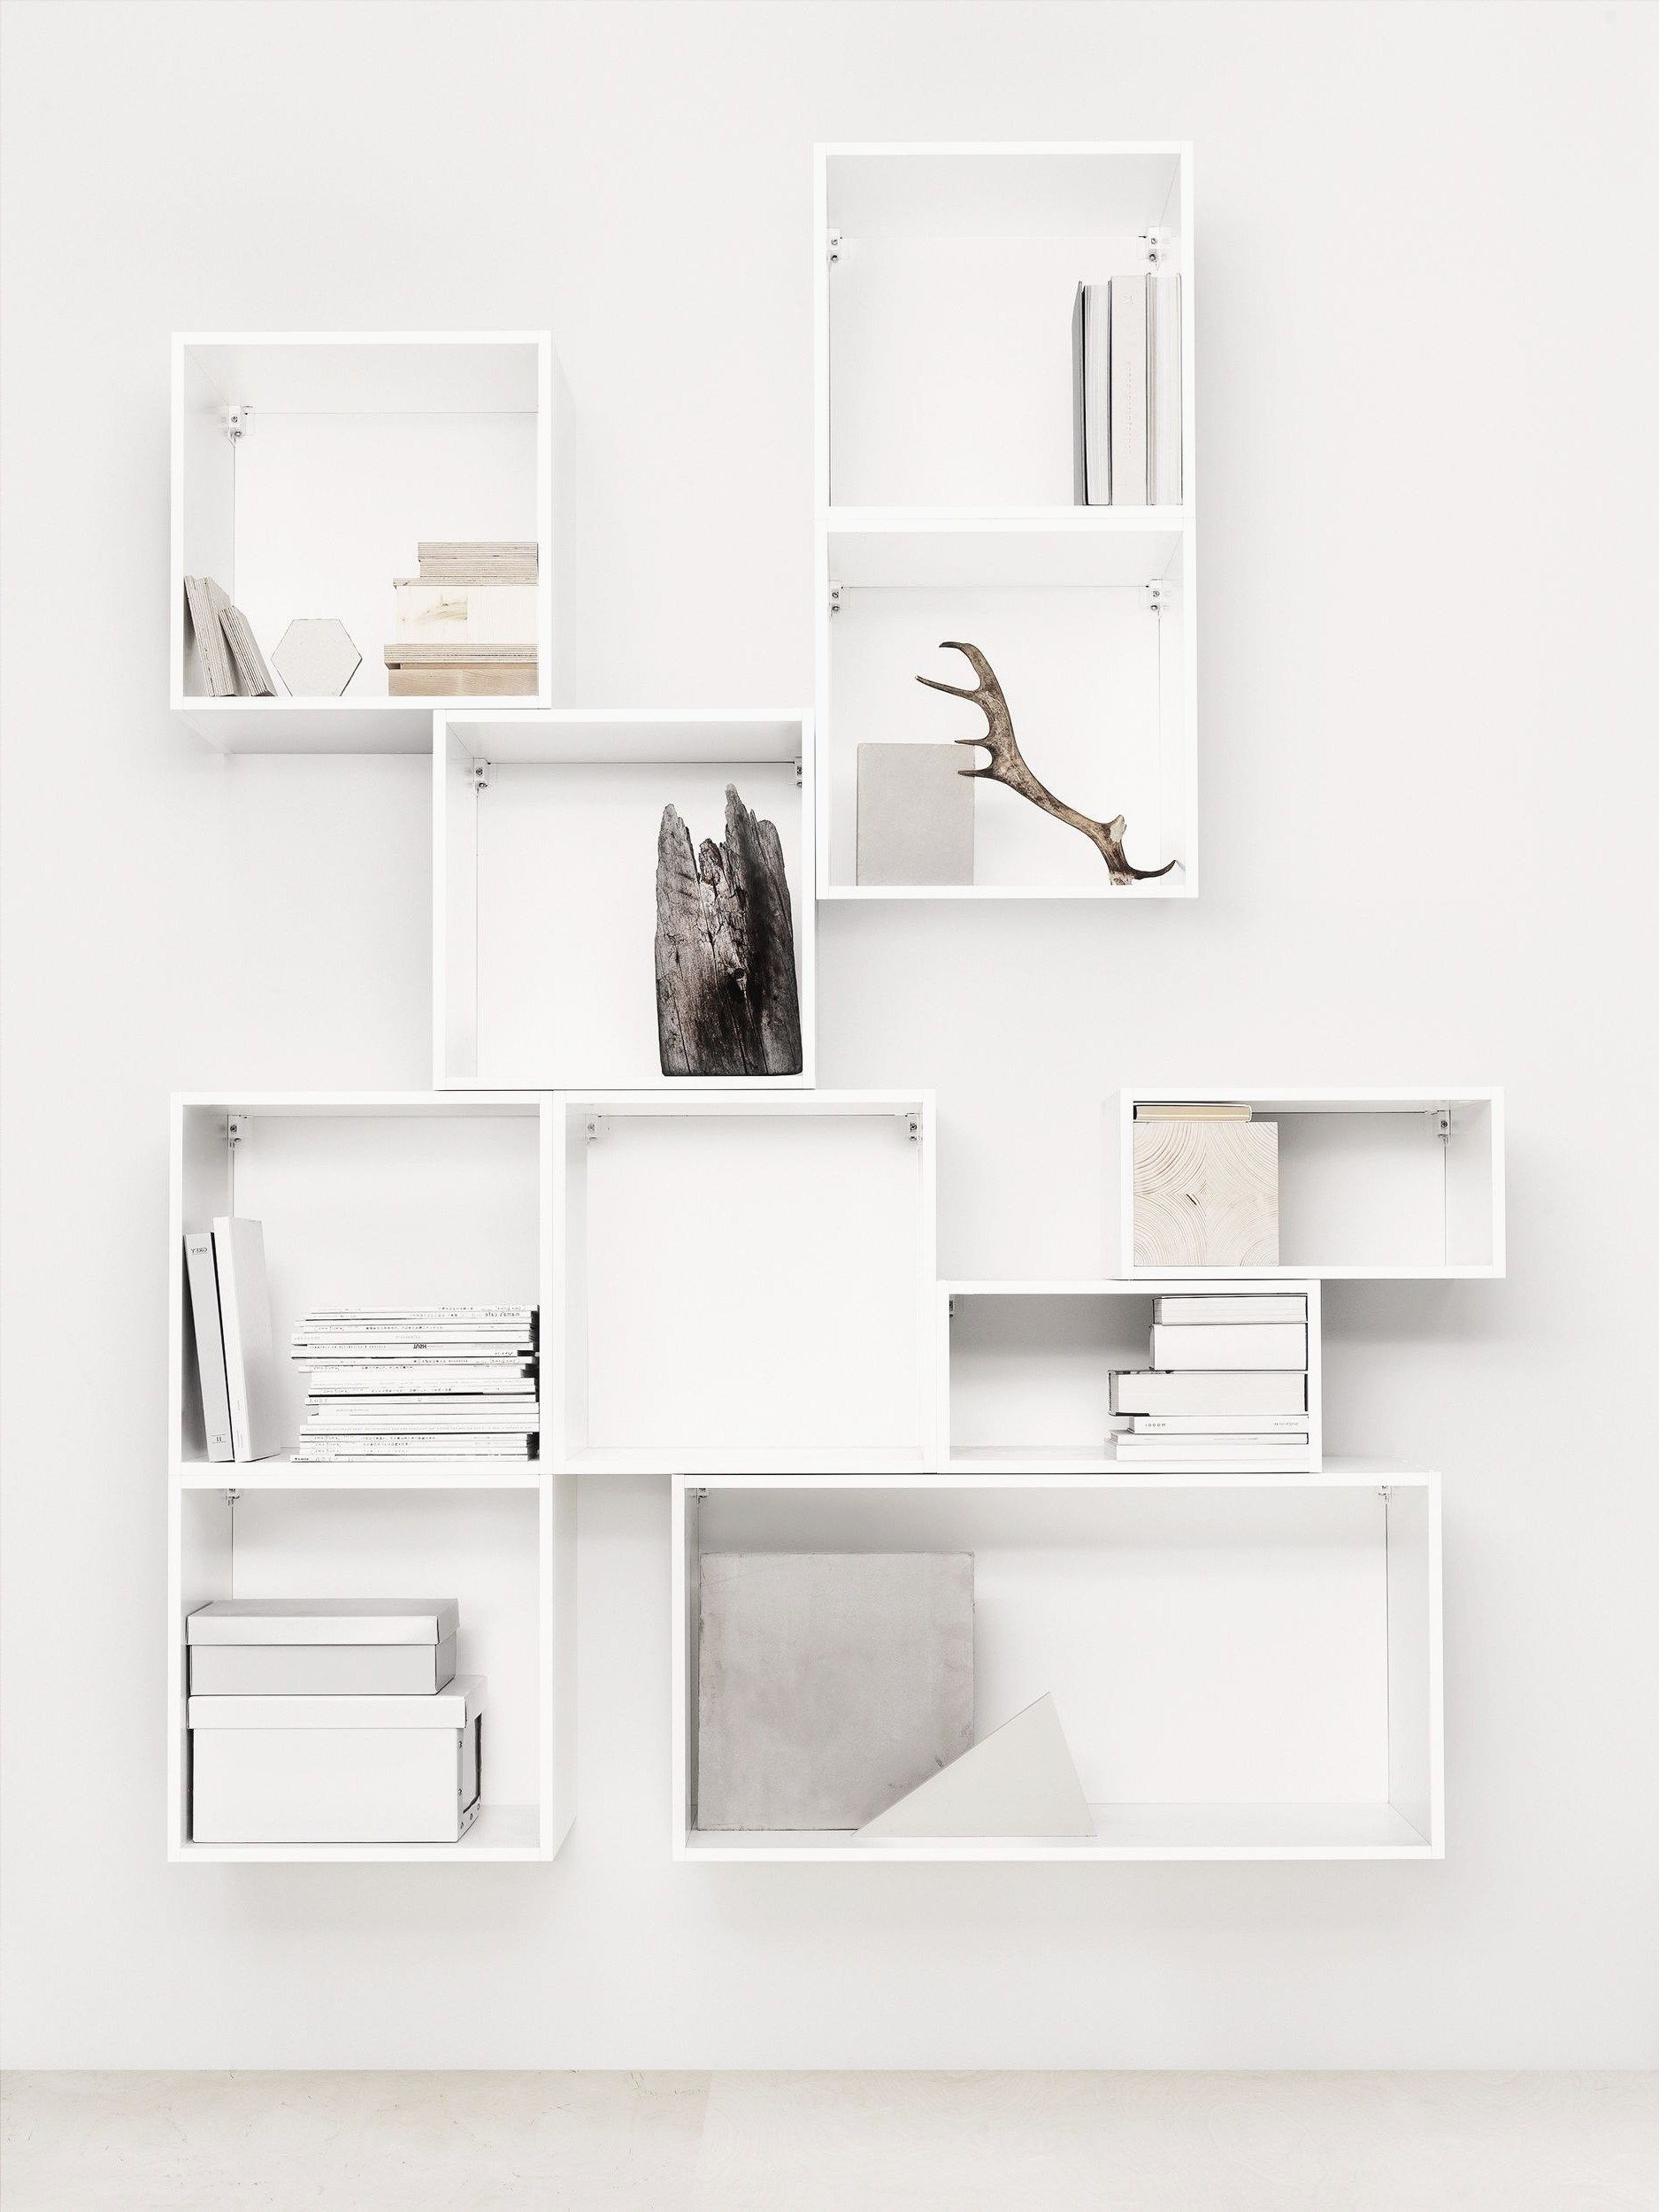 fabulous easy interior update floating shelves ikea box ideas wood hanging fireplace mantel wire wall coat rack bathroom home office cabinet systems secret compartment latches